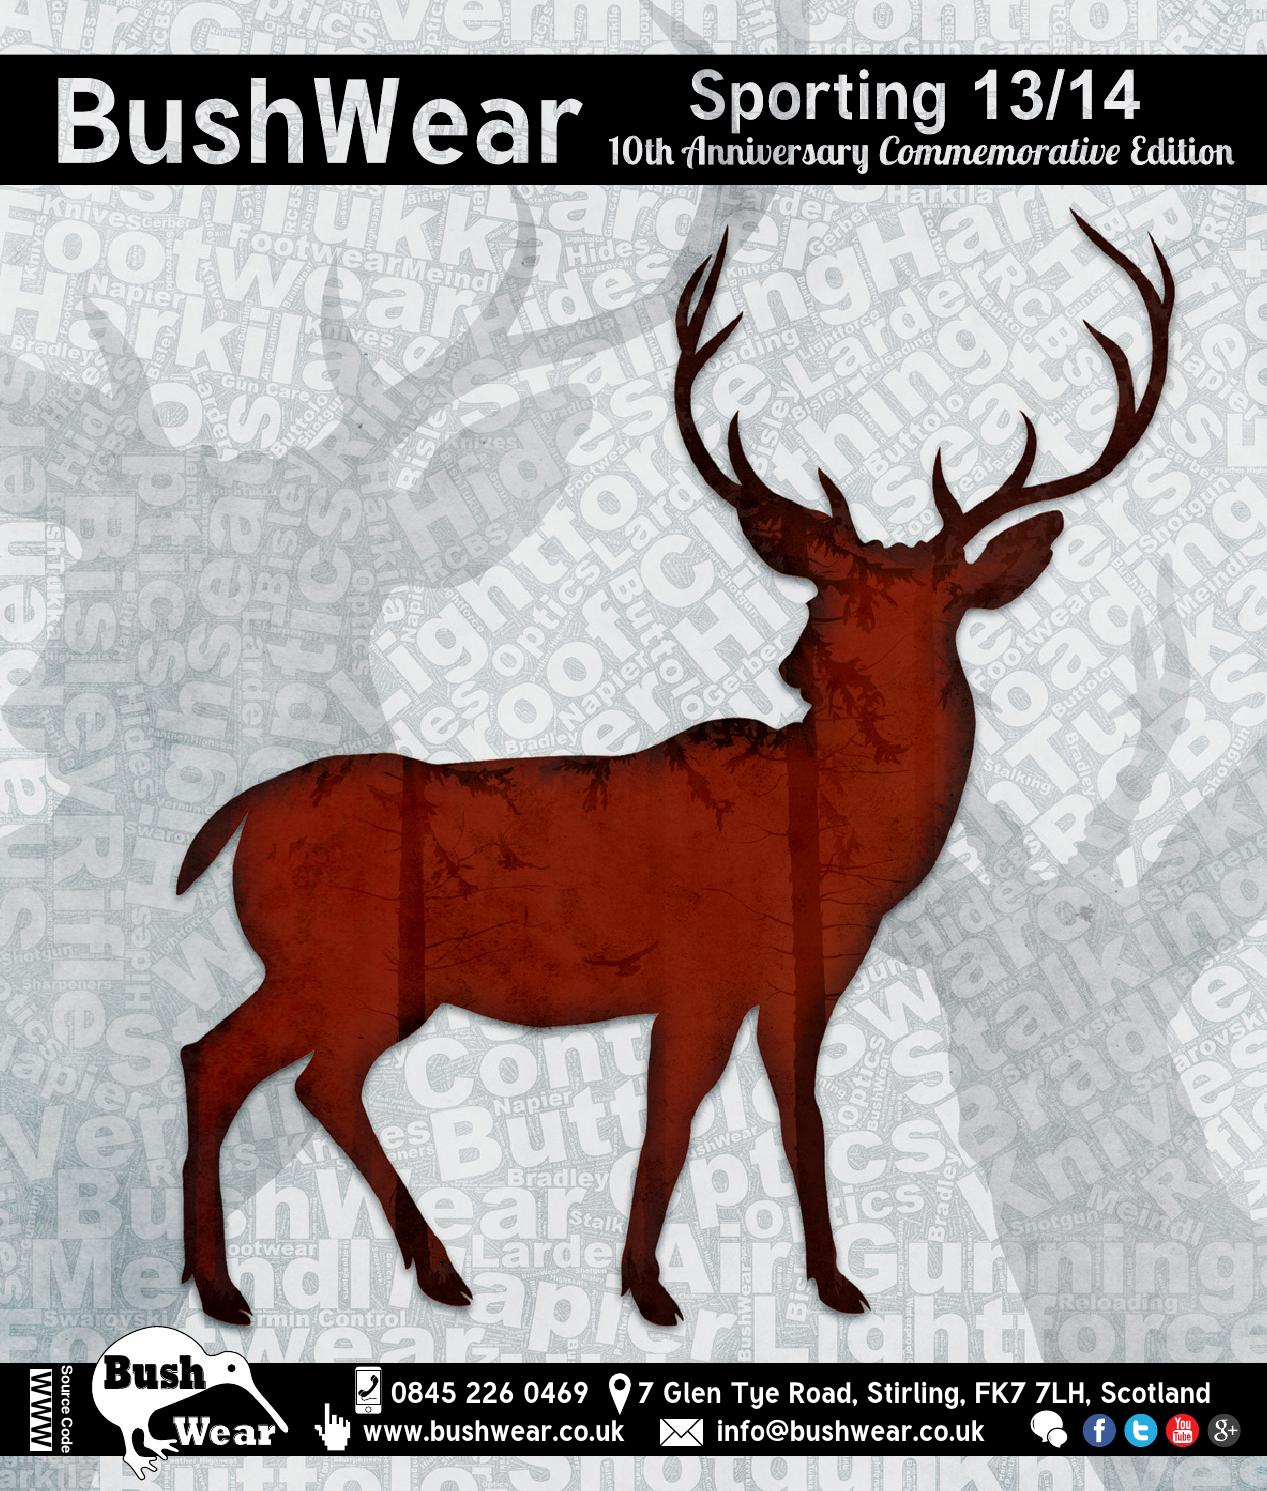 de643391904 BushWear Sporting 13 14 by Bushwear - issuu